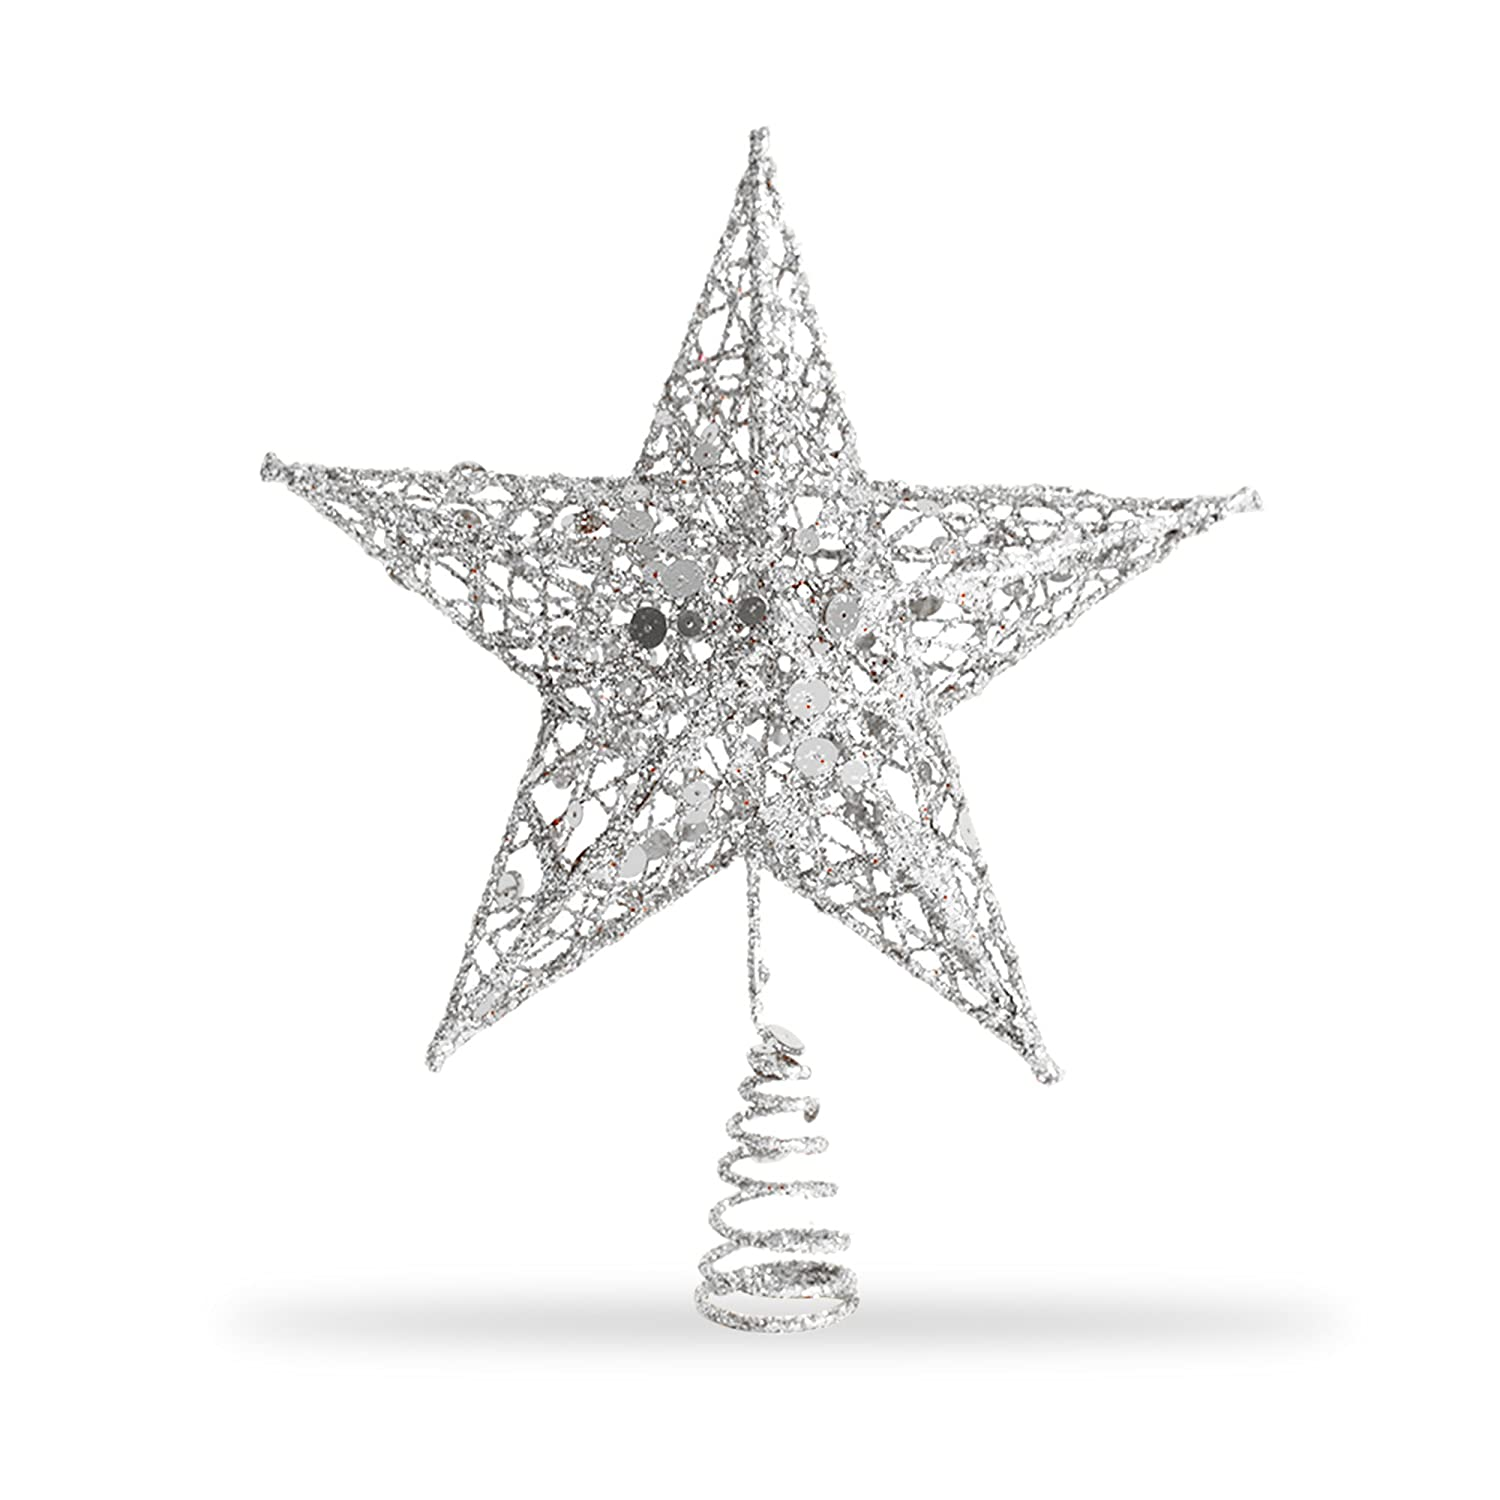 Amazon.com: Star Tree Topper, Exquisite Shimmery 8-inch x 6-inch ...